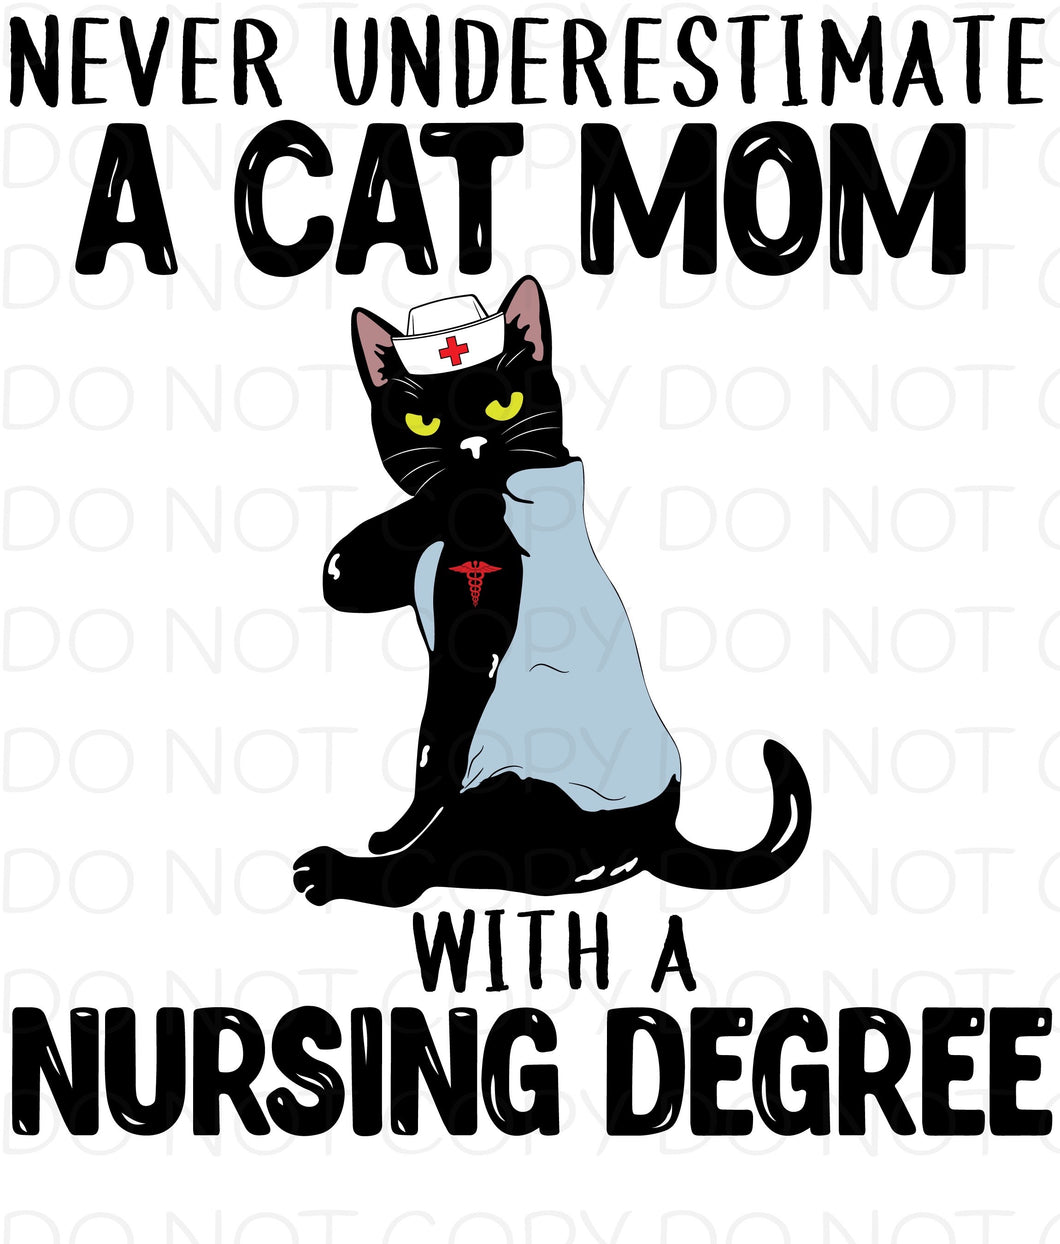 Never underestimate a cat mom with a nursing degree - Dye Sub Heat Transfer Sheet